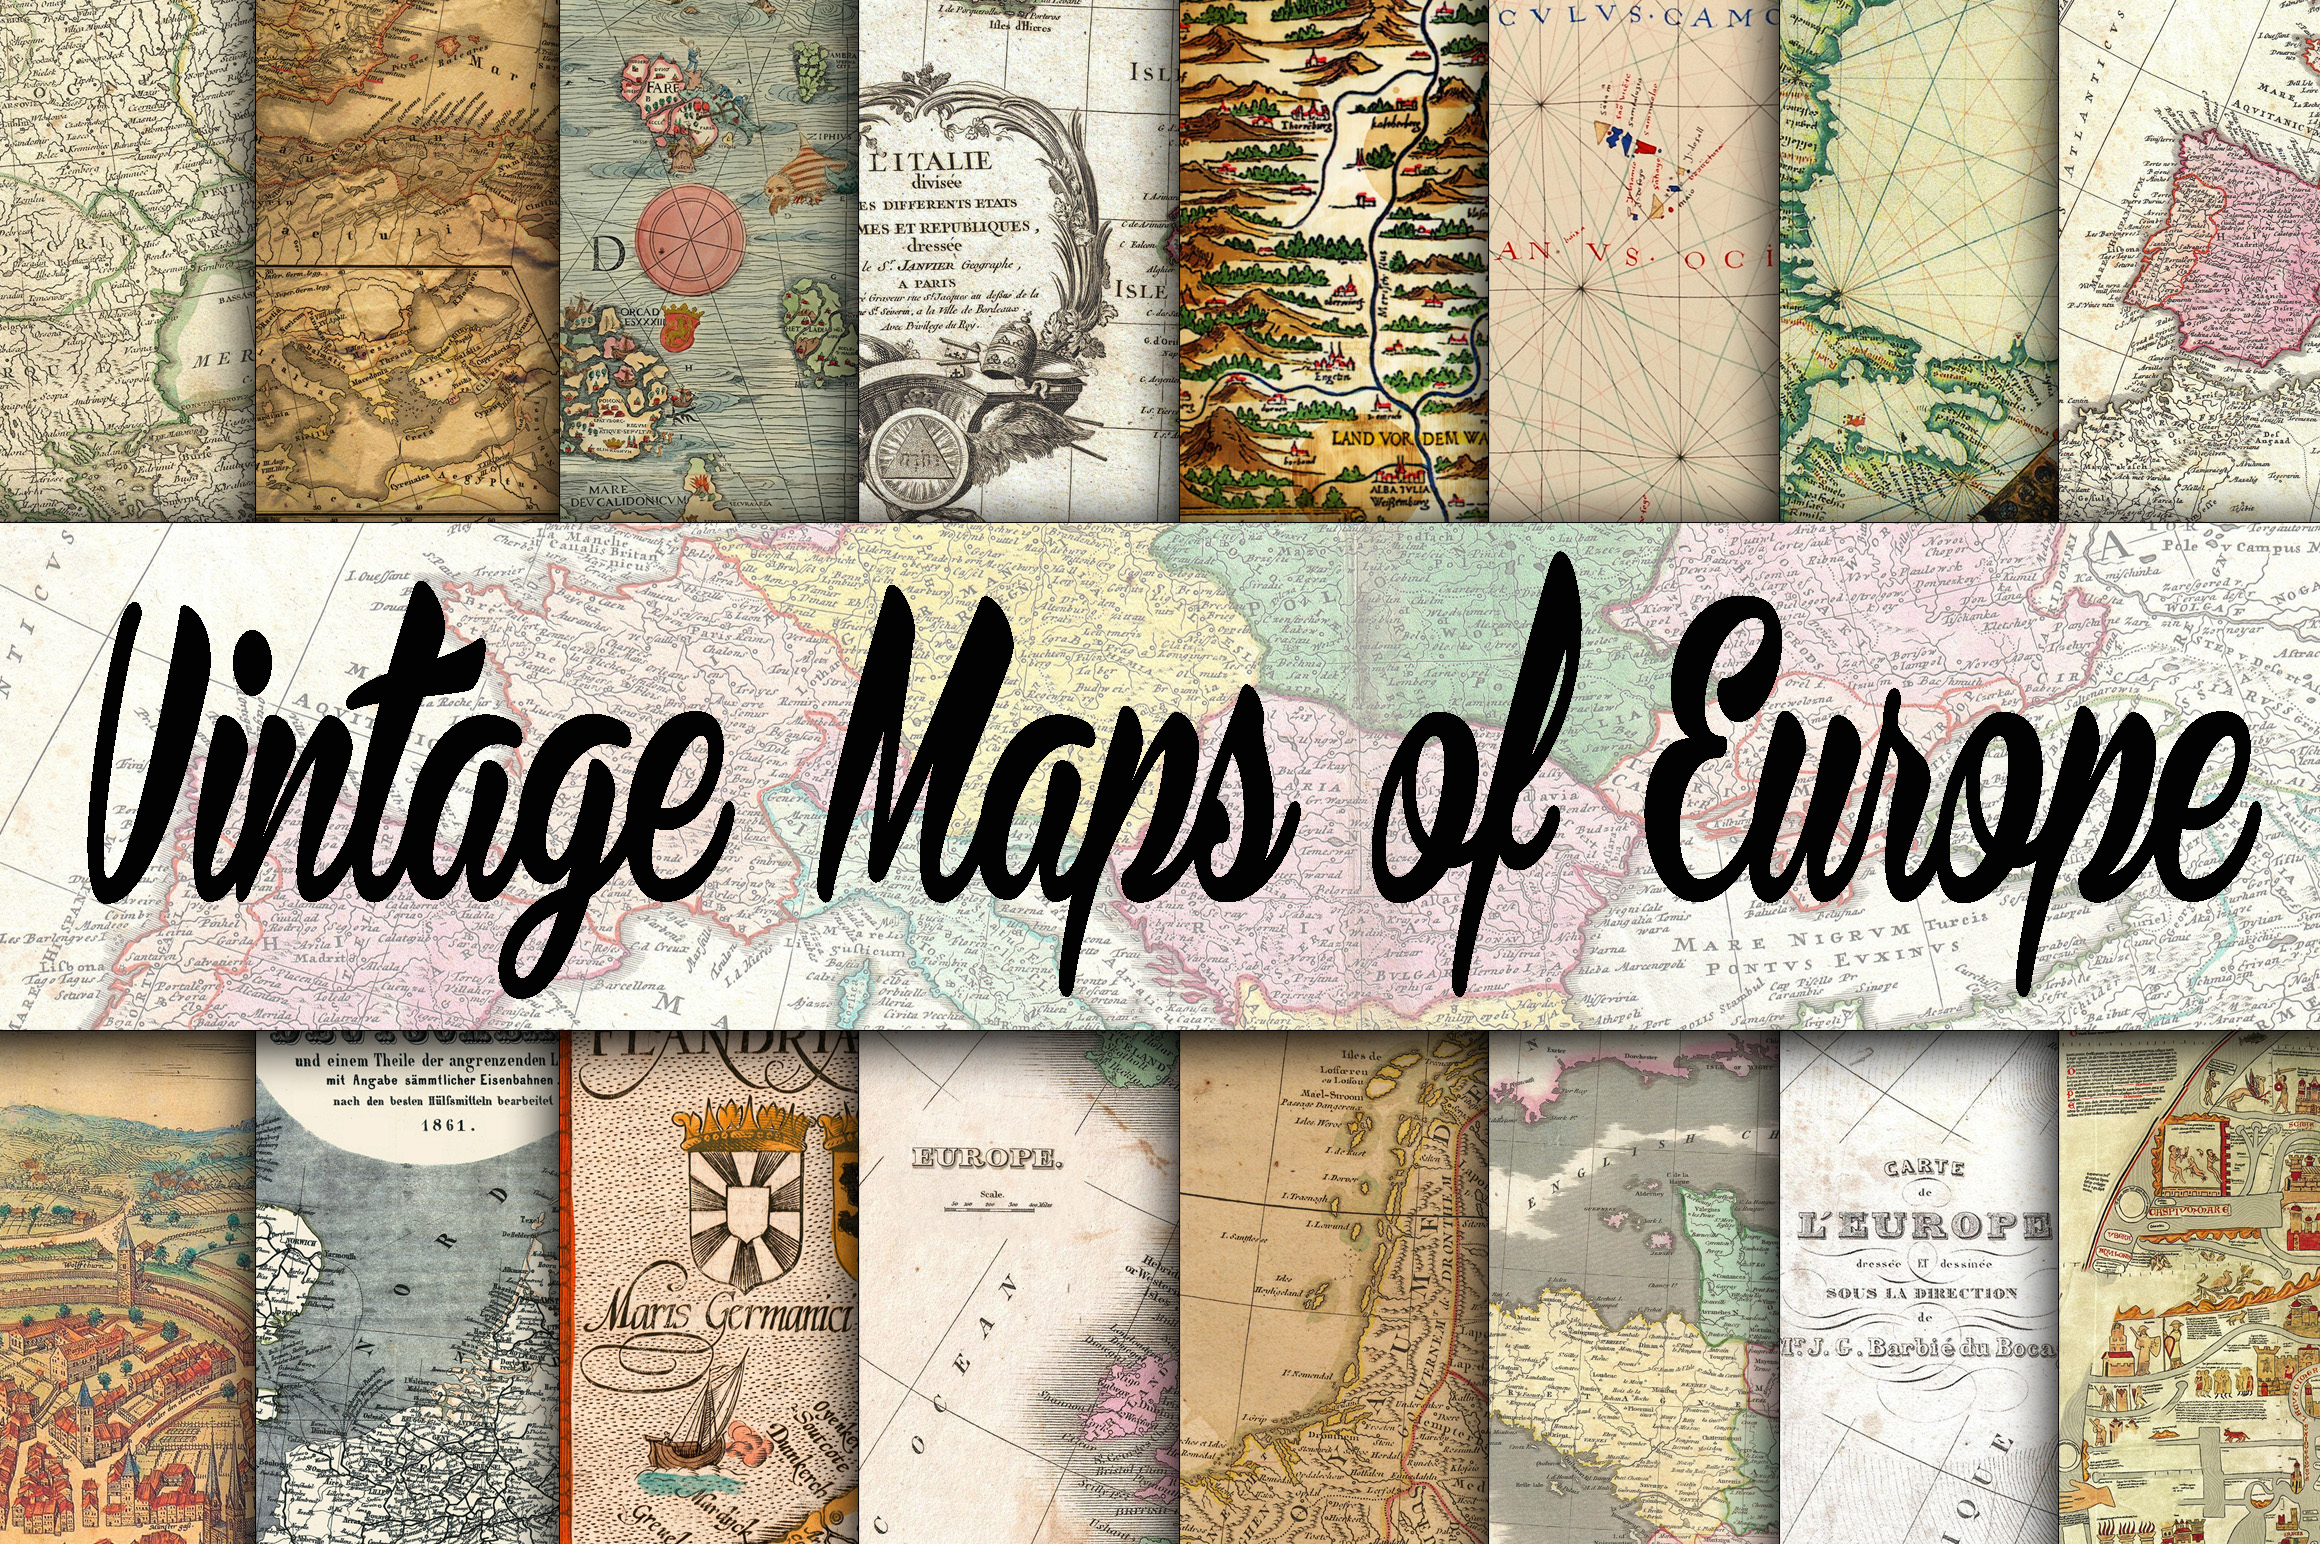 Vintage Maps of Europe Digital Paper Grafik Hintegründe von oldmarketdesigns